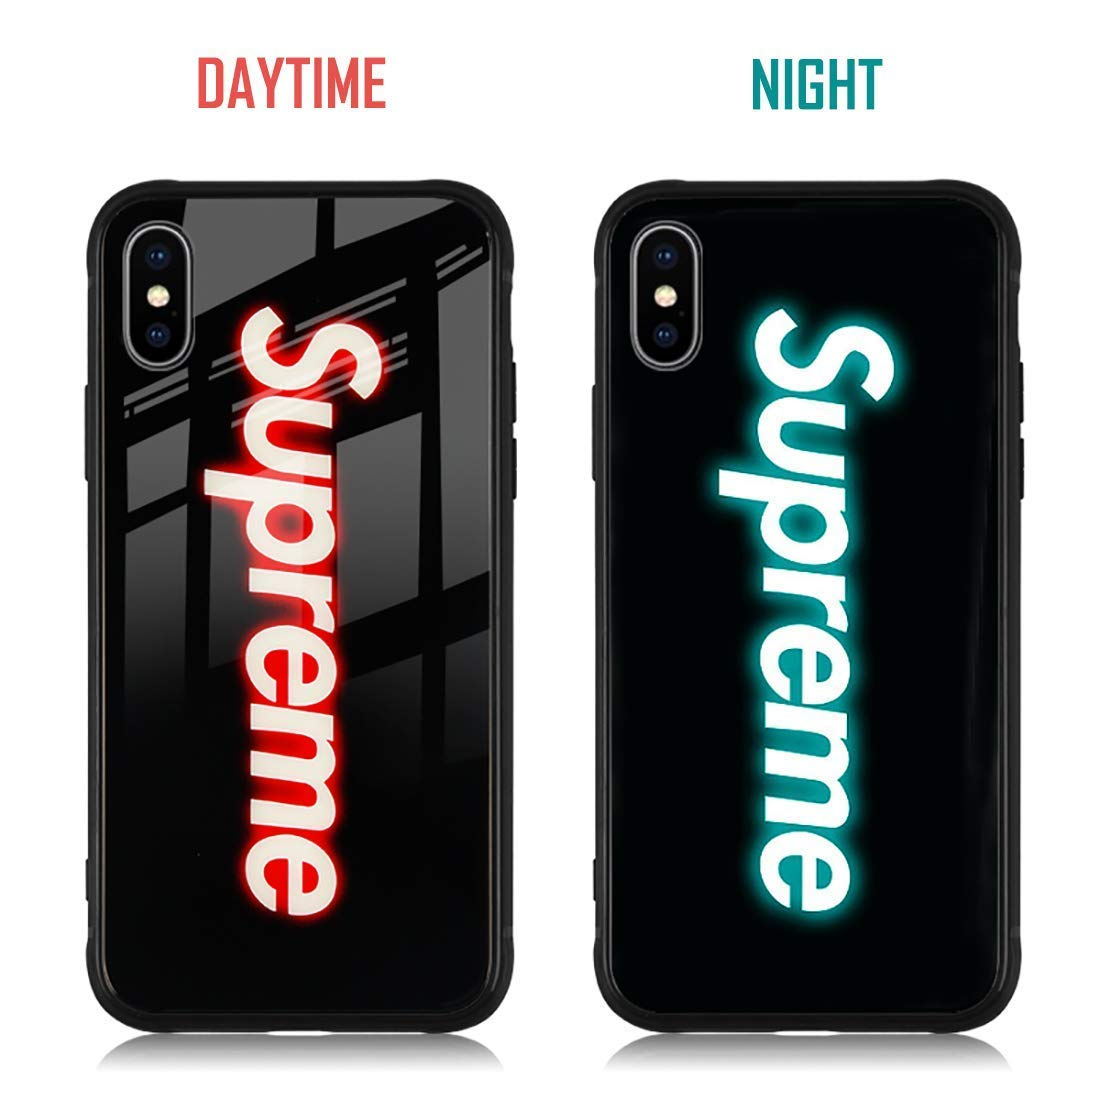 7307e0939472d Super Sup Supre Sumpre Luminous Fashion Luxury Tempered Glass Hybrid Case  iPhone X 7 8 6 6s Plus XS XR XS MAX (iPhone XR)